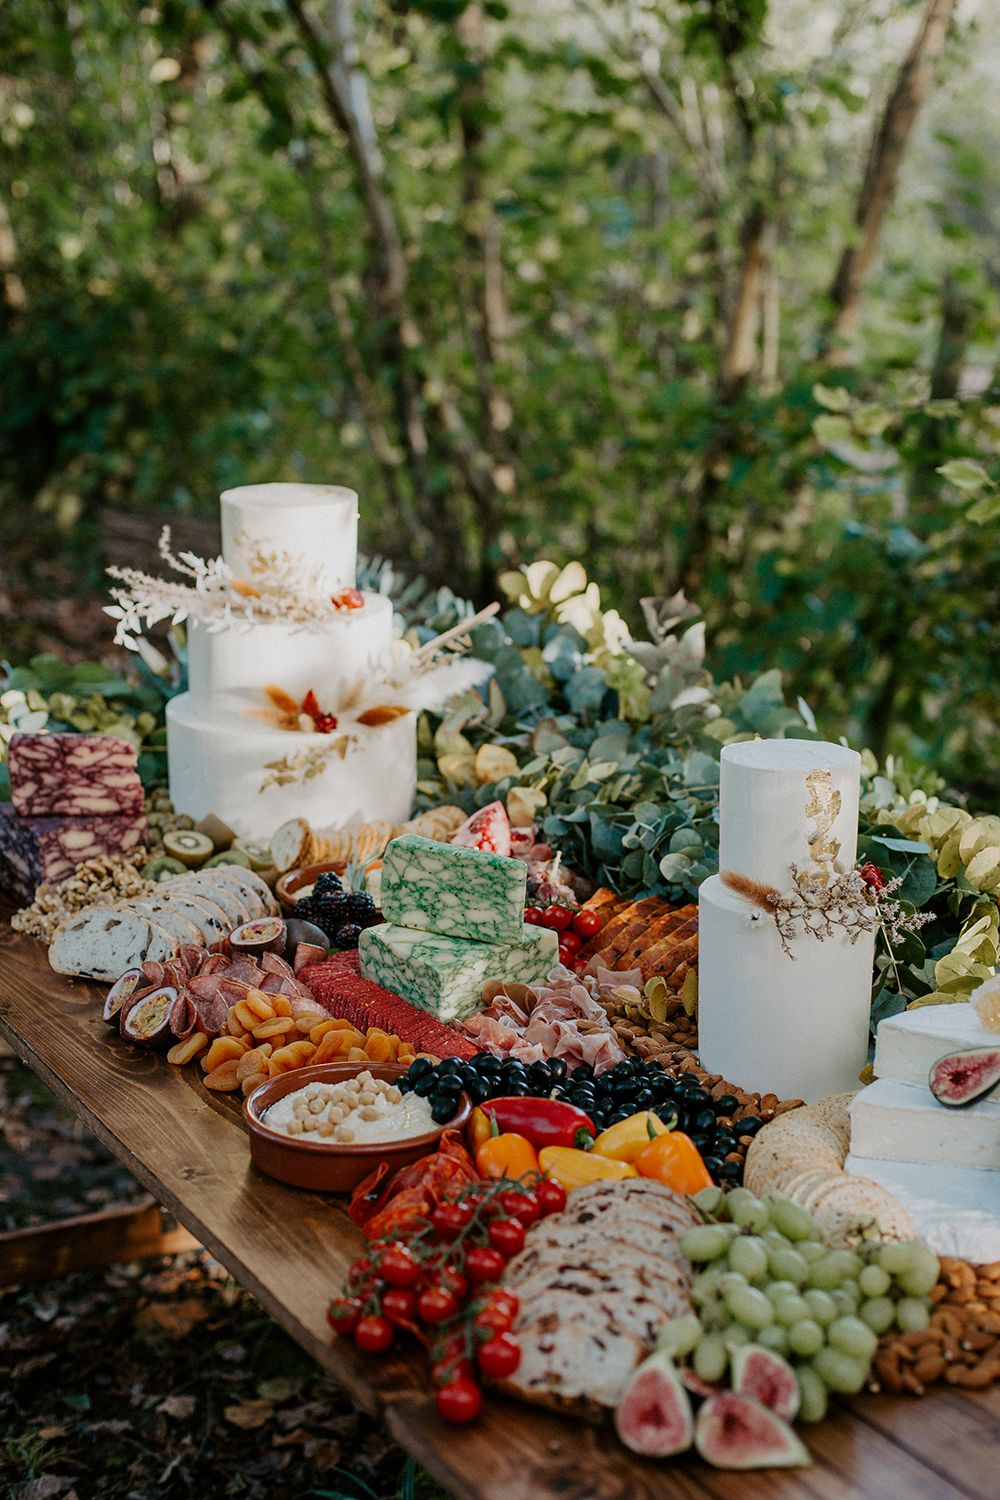 Autumn Harvest Boho Wedding Ideas in the Woods | Whimsical Wonderland Weddings